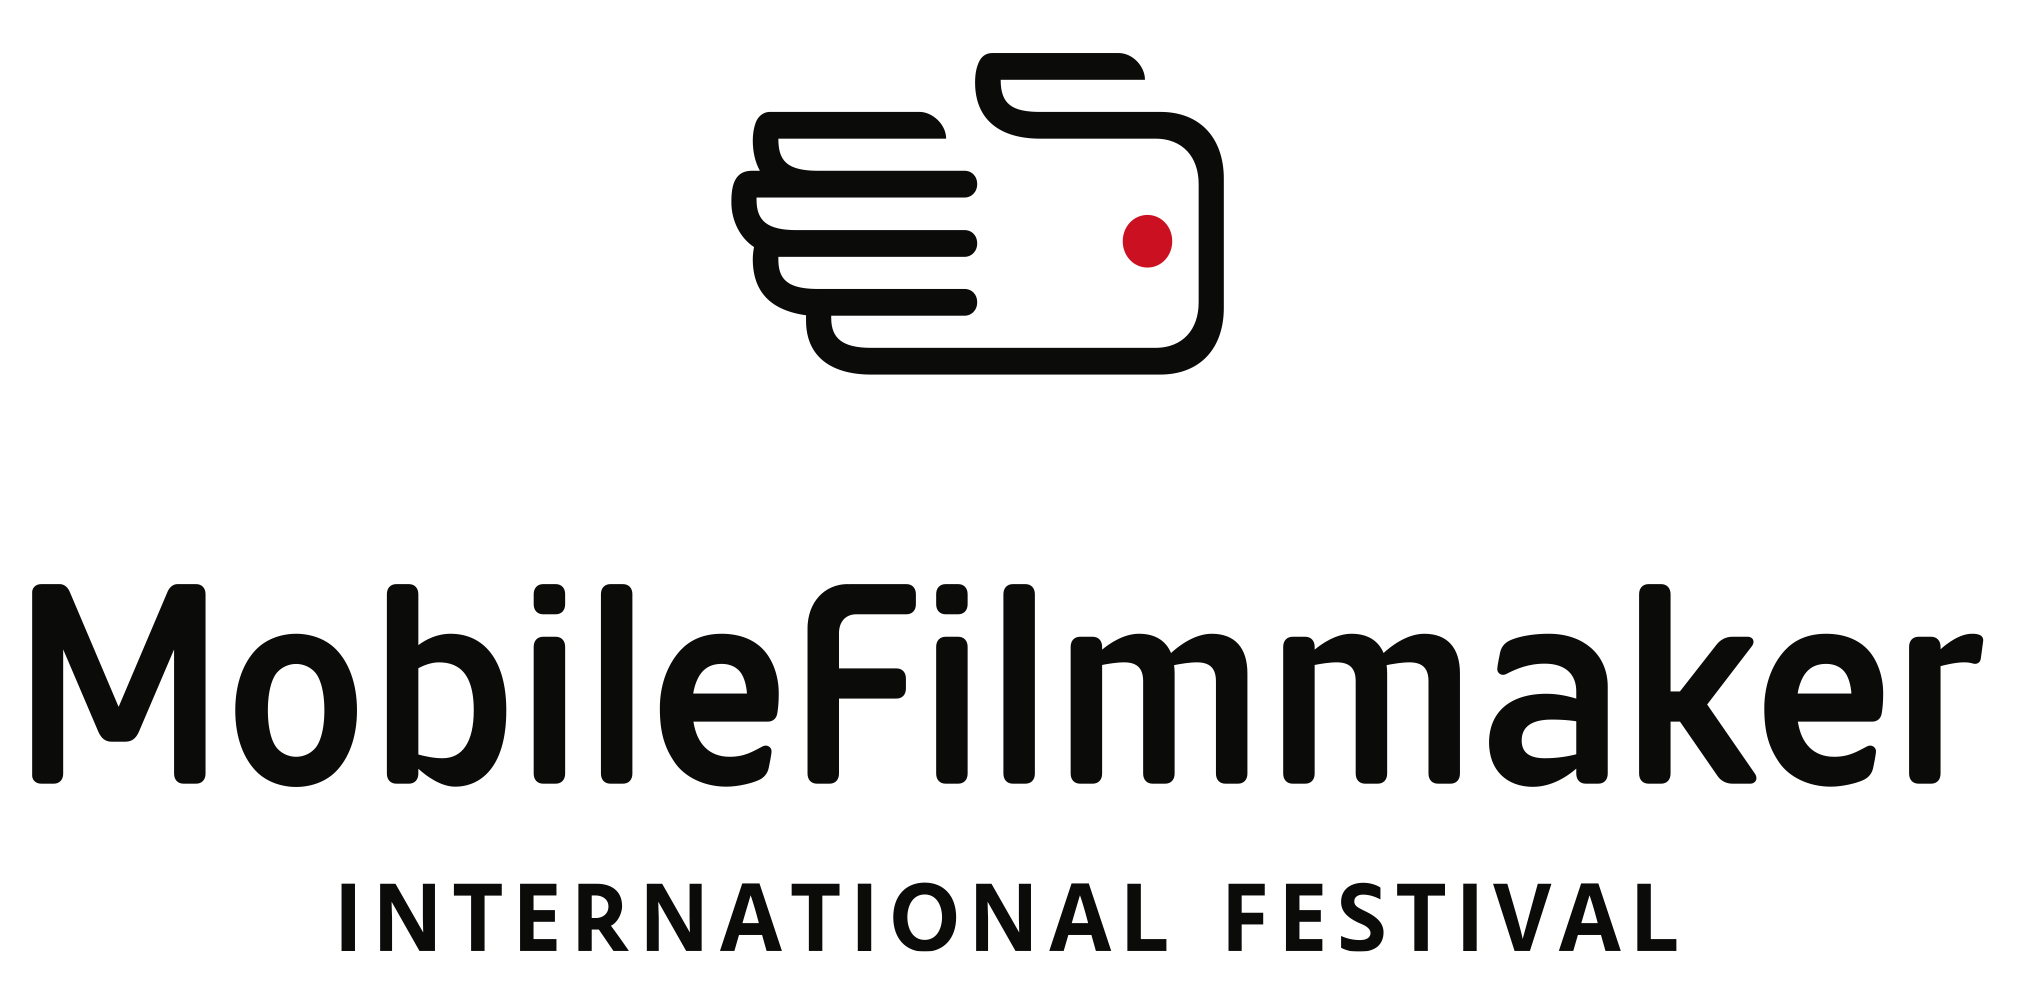 MobileFilmmaker International Festival